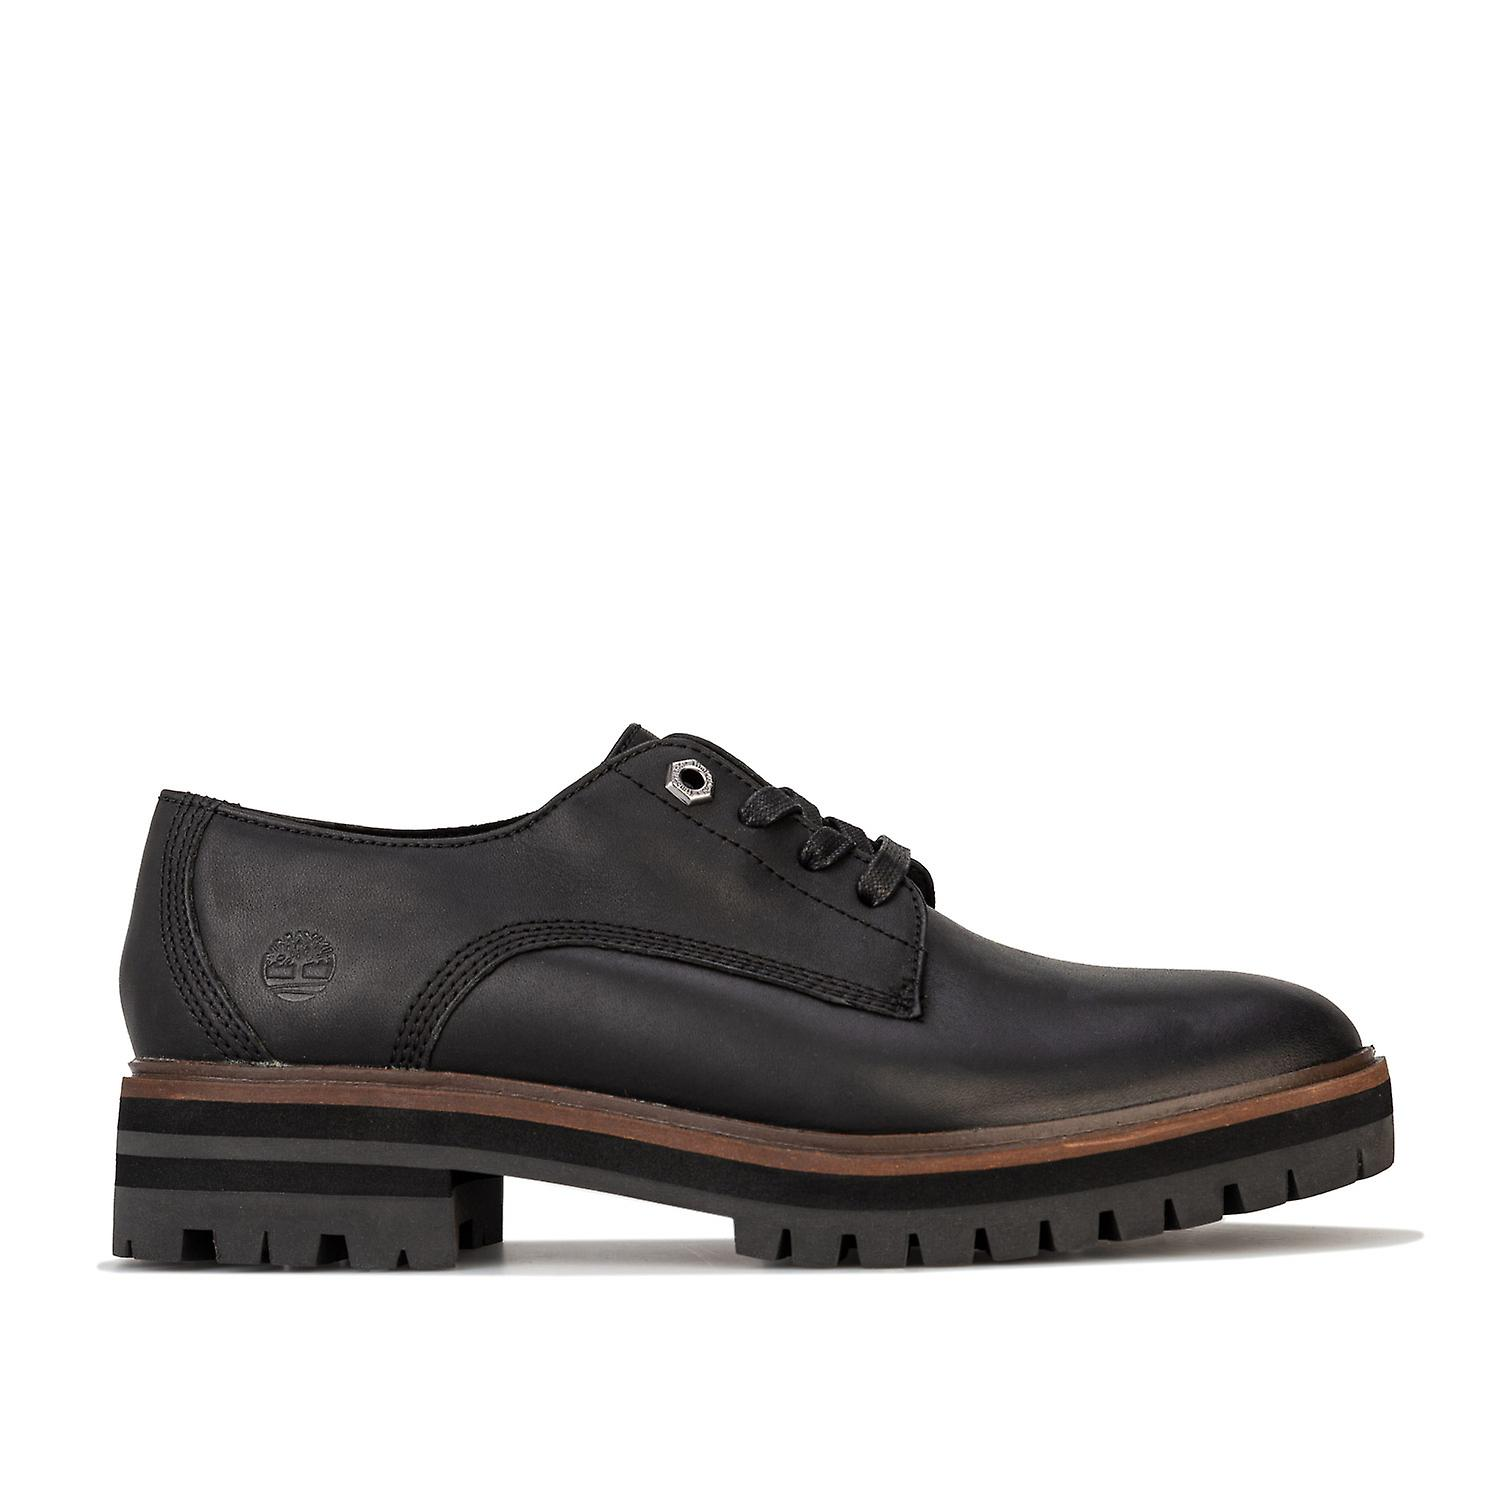 London Schuhe Jet In Womens Black Square Timberland Oxford PZuOiXkT